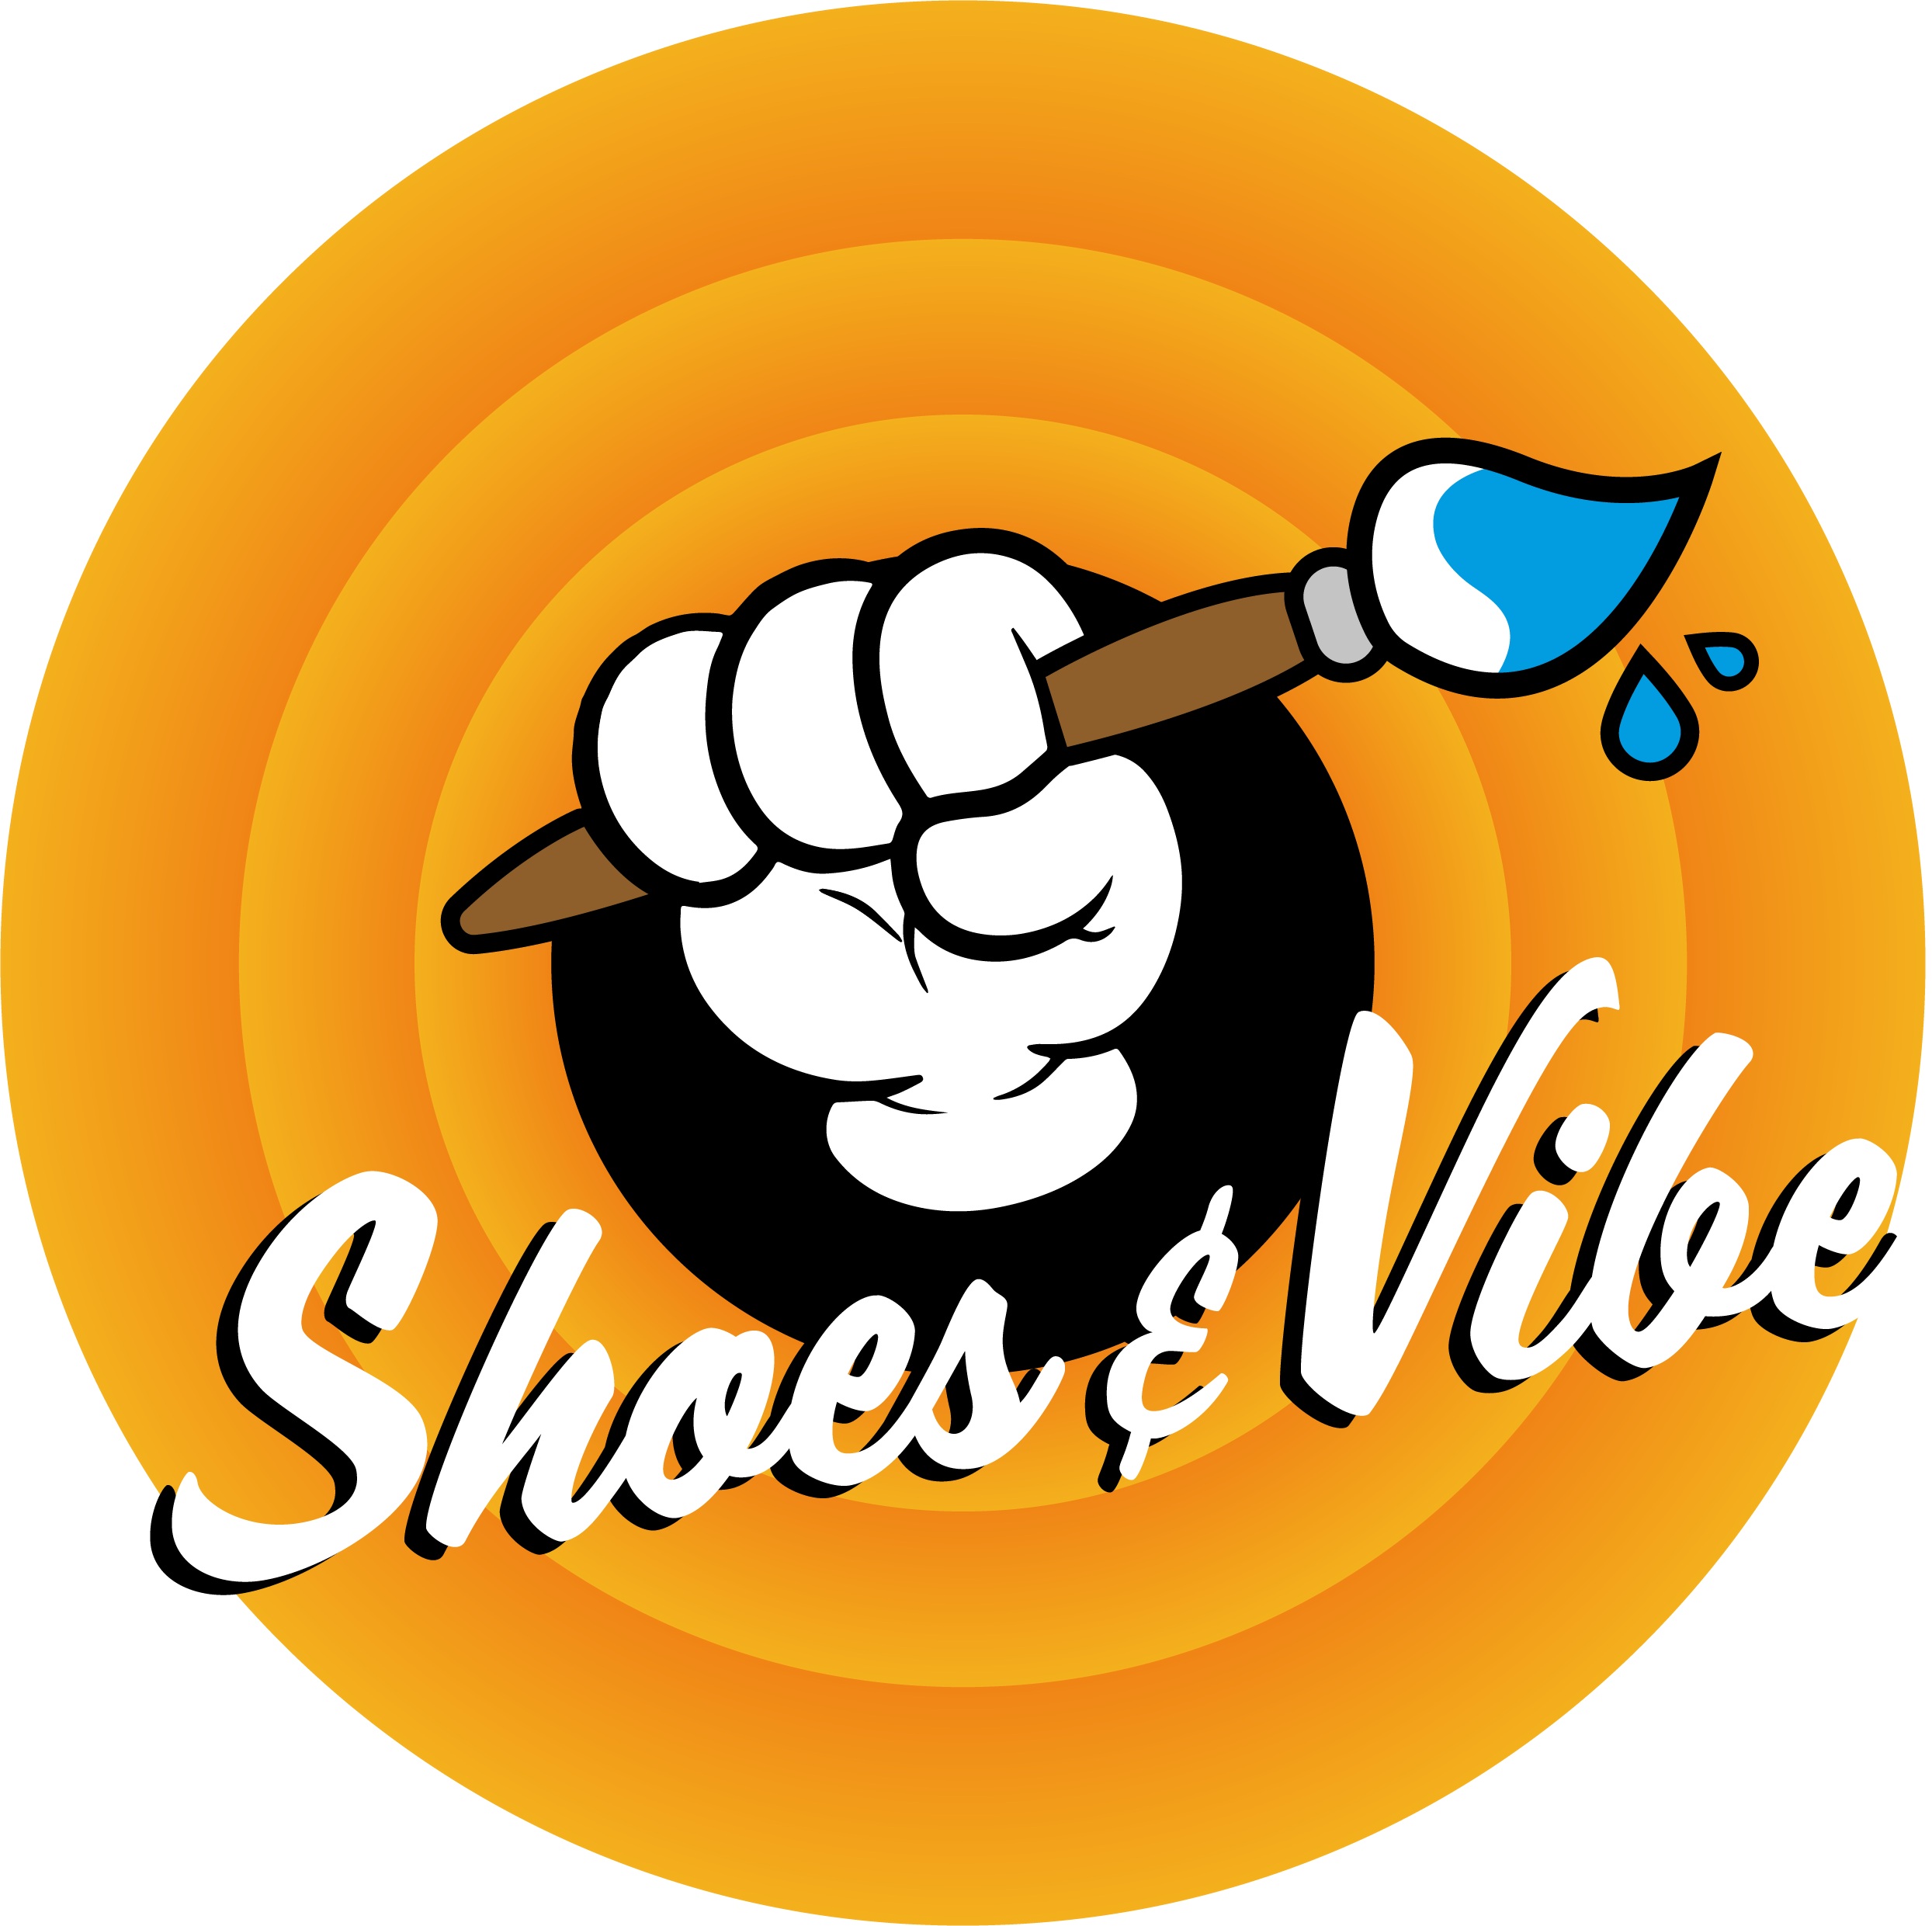 Shoes&Vibes